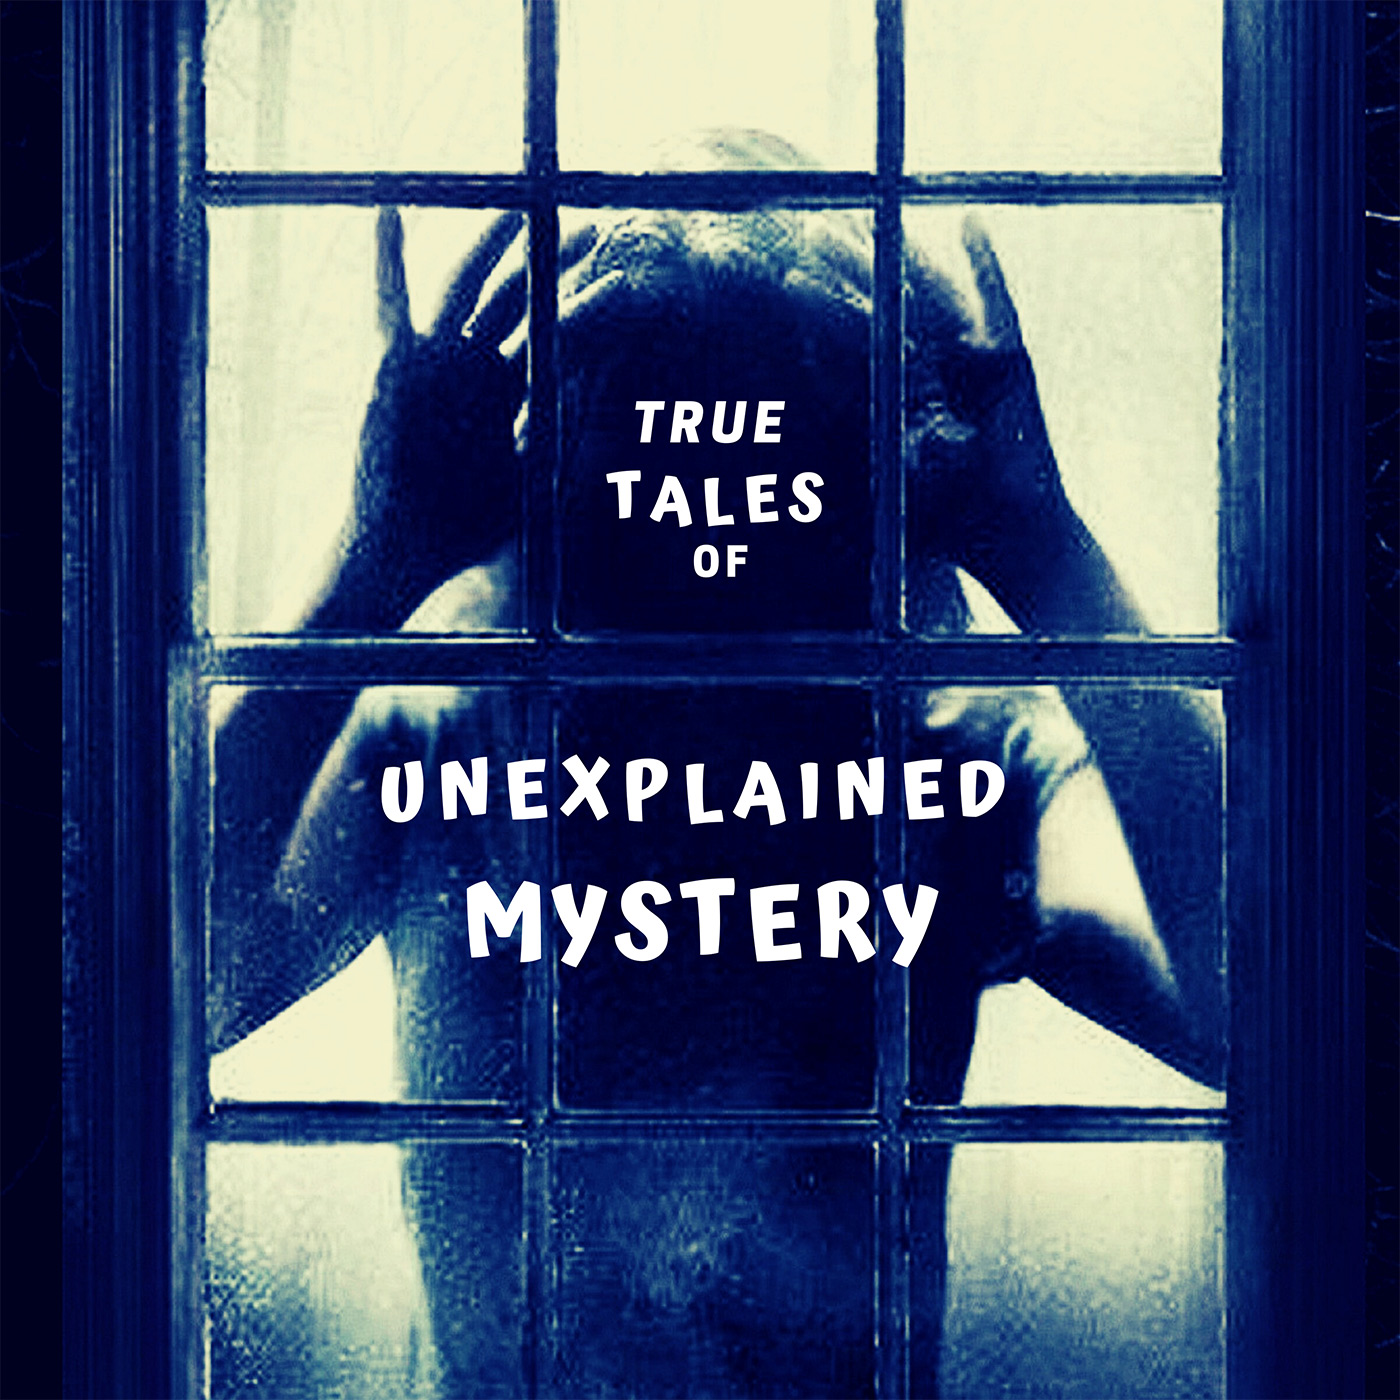 Tales of Mystery Unexplained